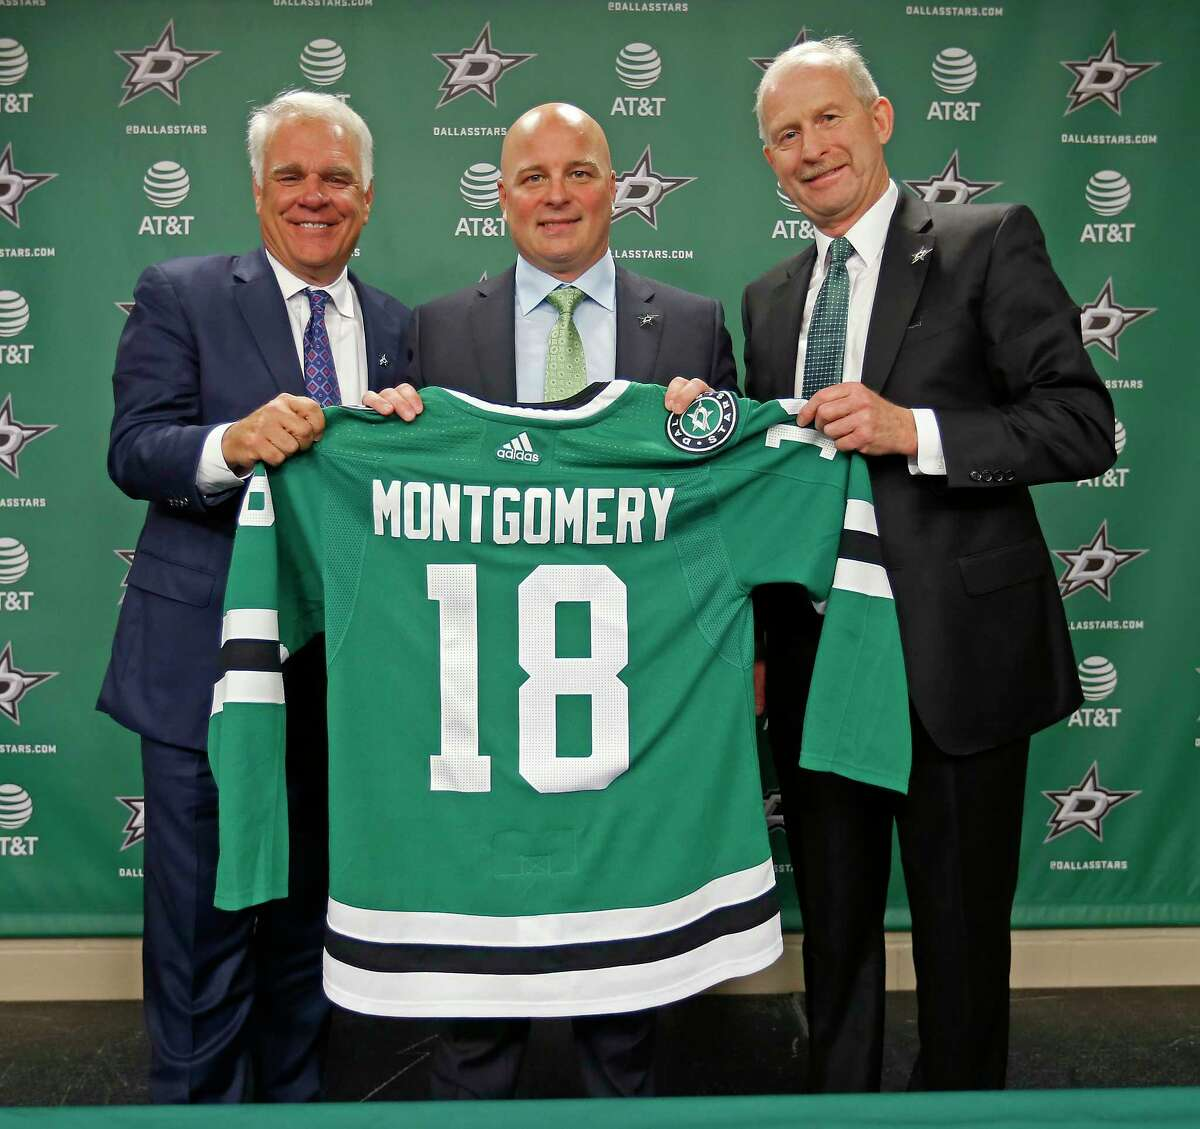 Dallas new head coach Jim Montgomery, center, CEO Jim Lites, left, and general manager Jim Nill pose for a photograph during an NHL hockey press conference at American Airlines Center in Dallas, Friday, May 4, 2018. Montgomery, the second head coach in three years to go from the college ranks to the NHL, was 125-57-26 the past five seasons at the University of Denver, including a national title in 2016-17. (Jae S. Lee/The Dallas Morning News via AP)